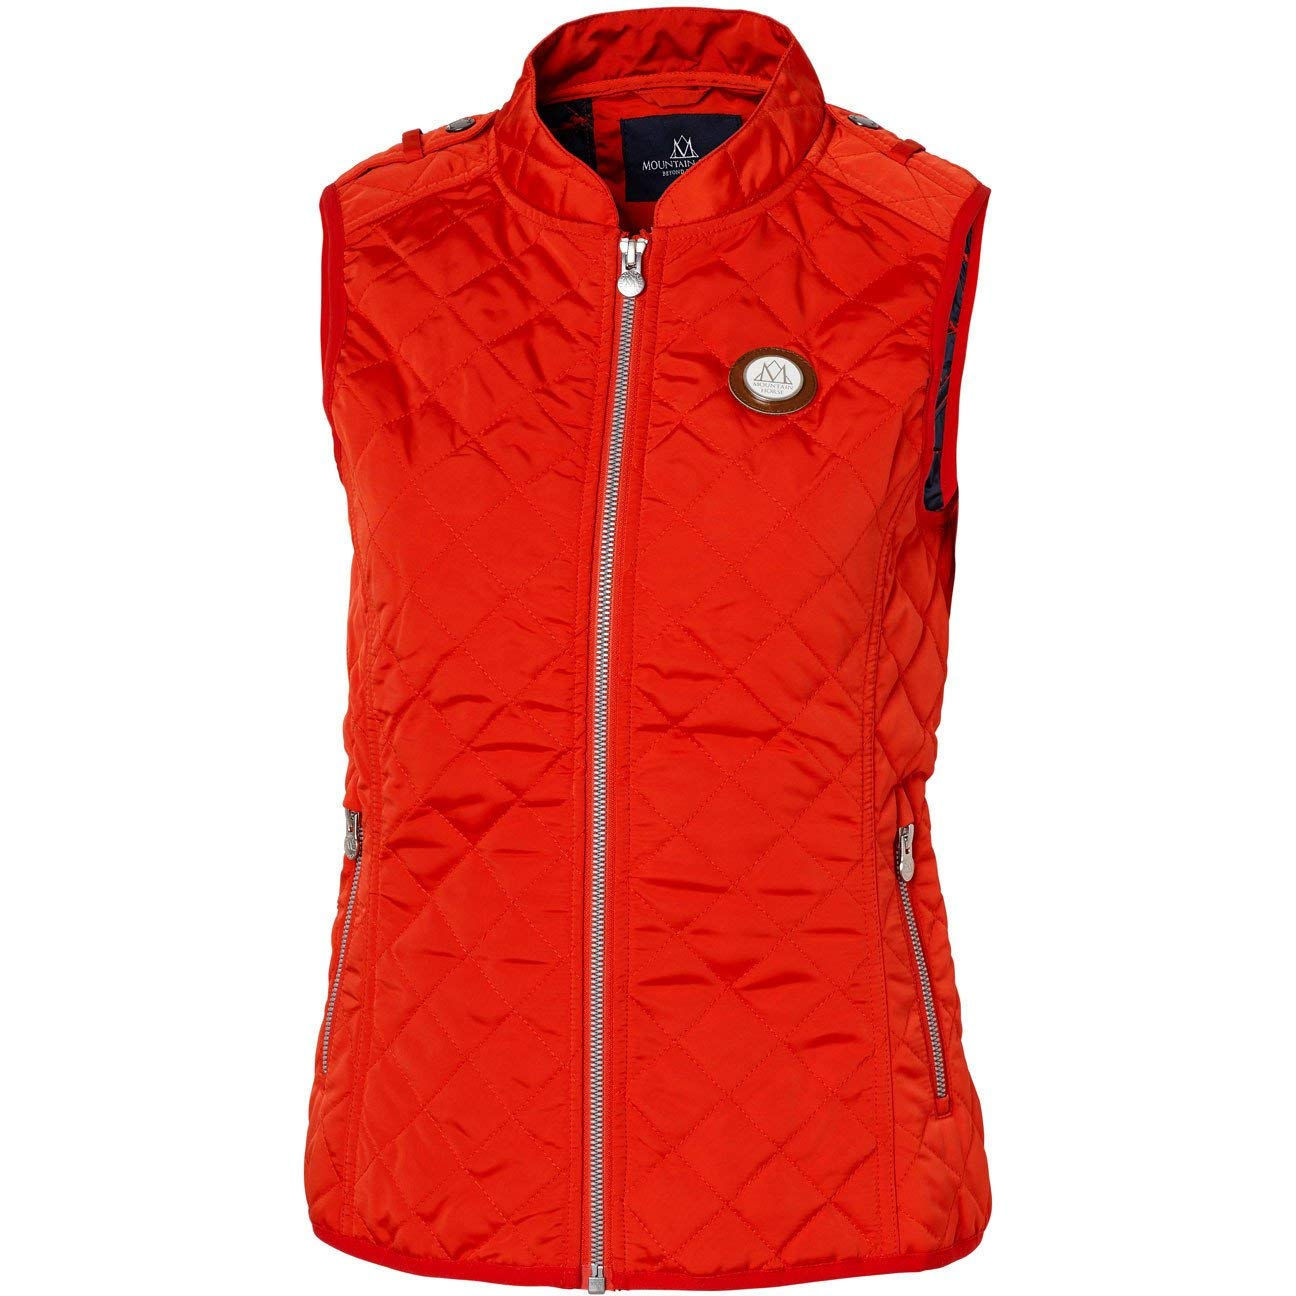 Mountain Horse OUTERWEAR レディース Small レッド B06XJ8CZZH